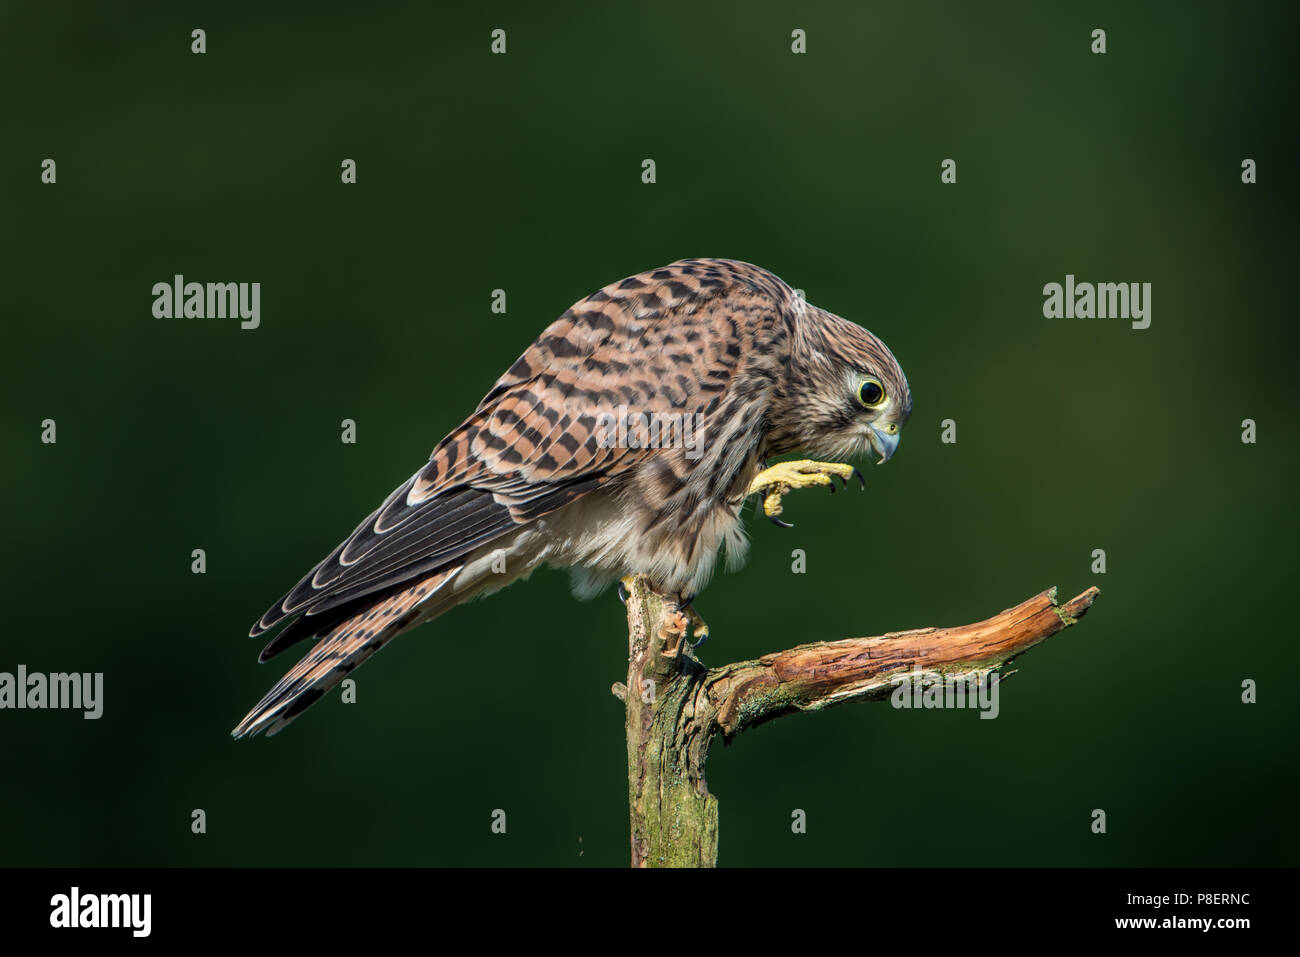 Next step of the young european kestrel (Falco tinnunculus) on the old branch with a nice green defocused background - Stock Image